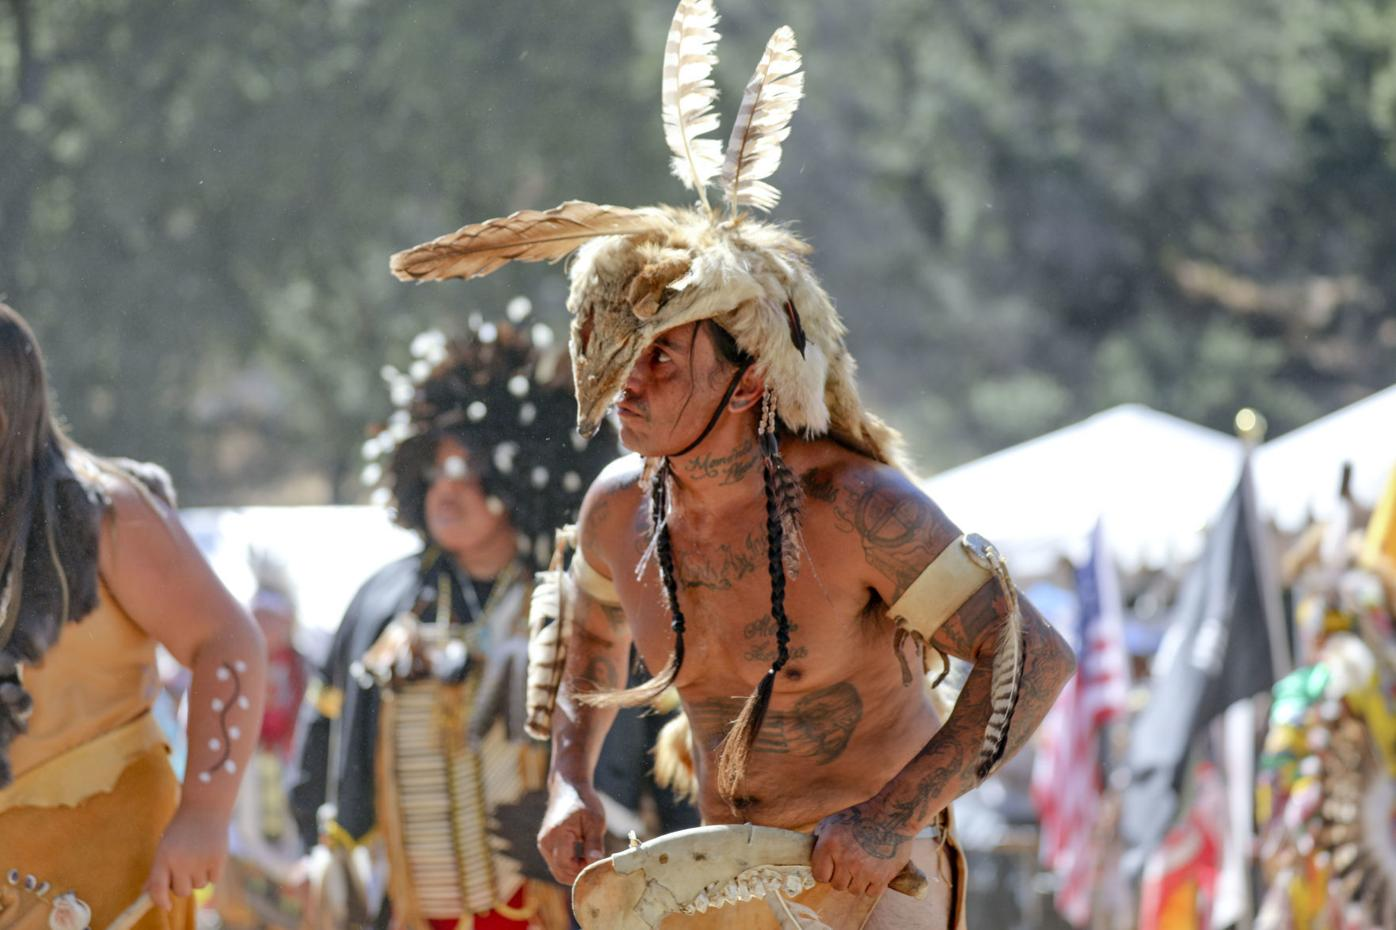 Photos: Dancers gather for 2019 Chumash Inter-Tribal Pow Wow